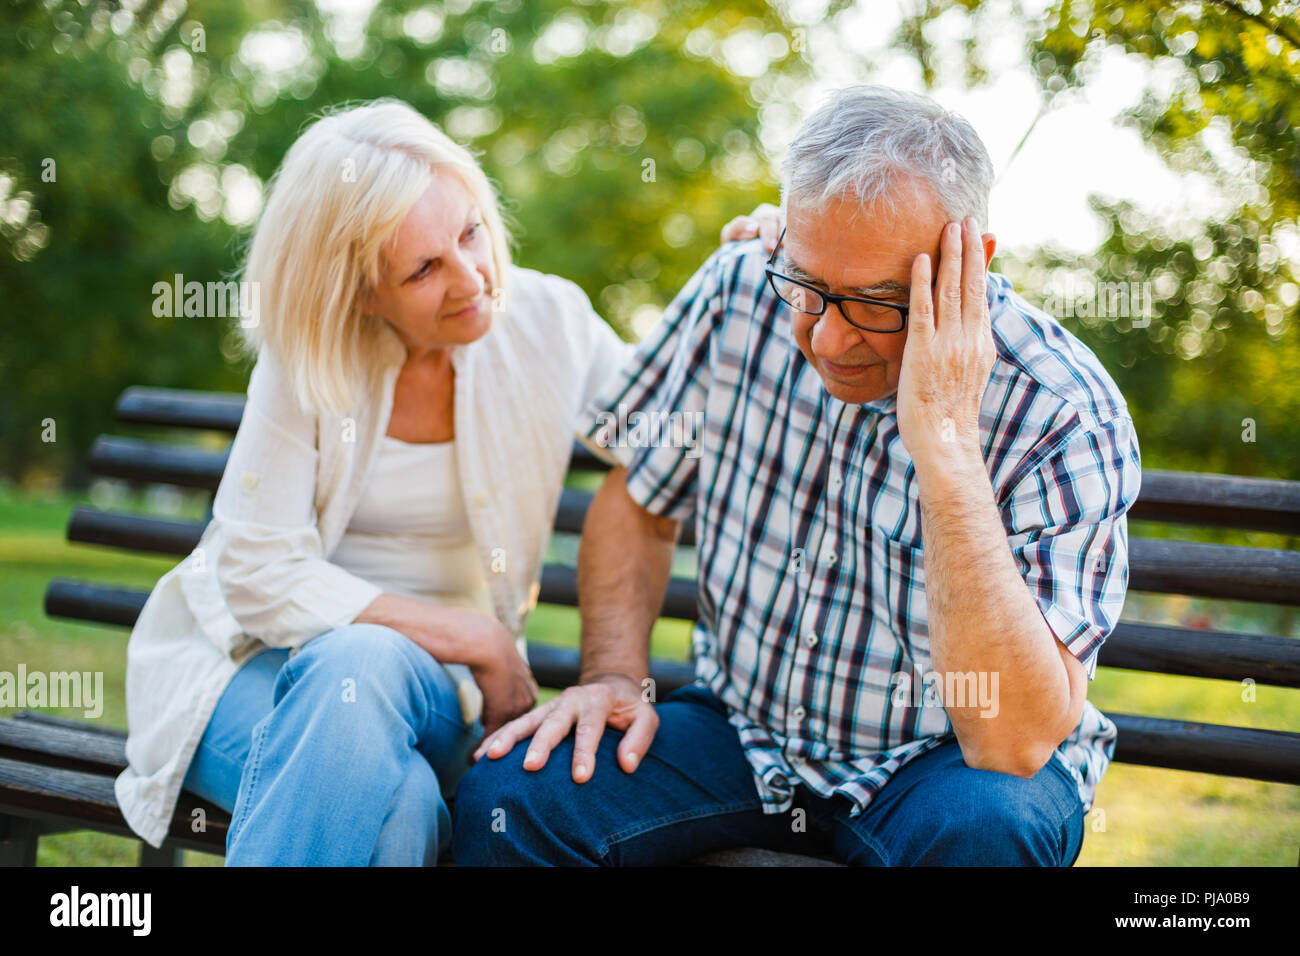 Senior man is sad and depressed. Friend is consoling him. - Stock Image